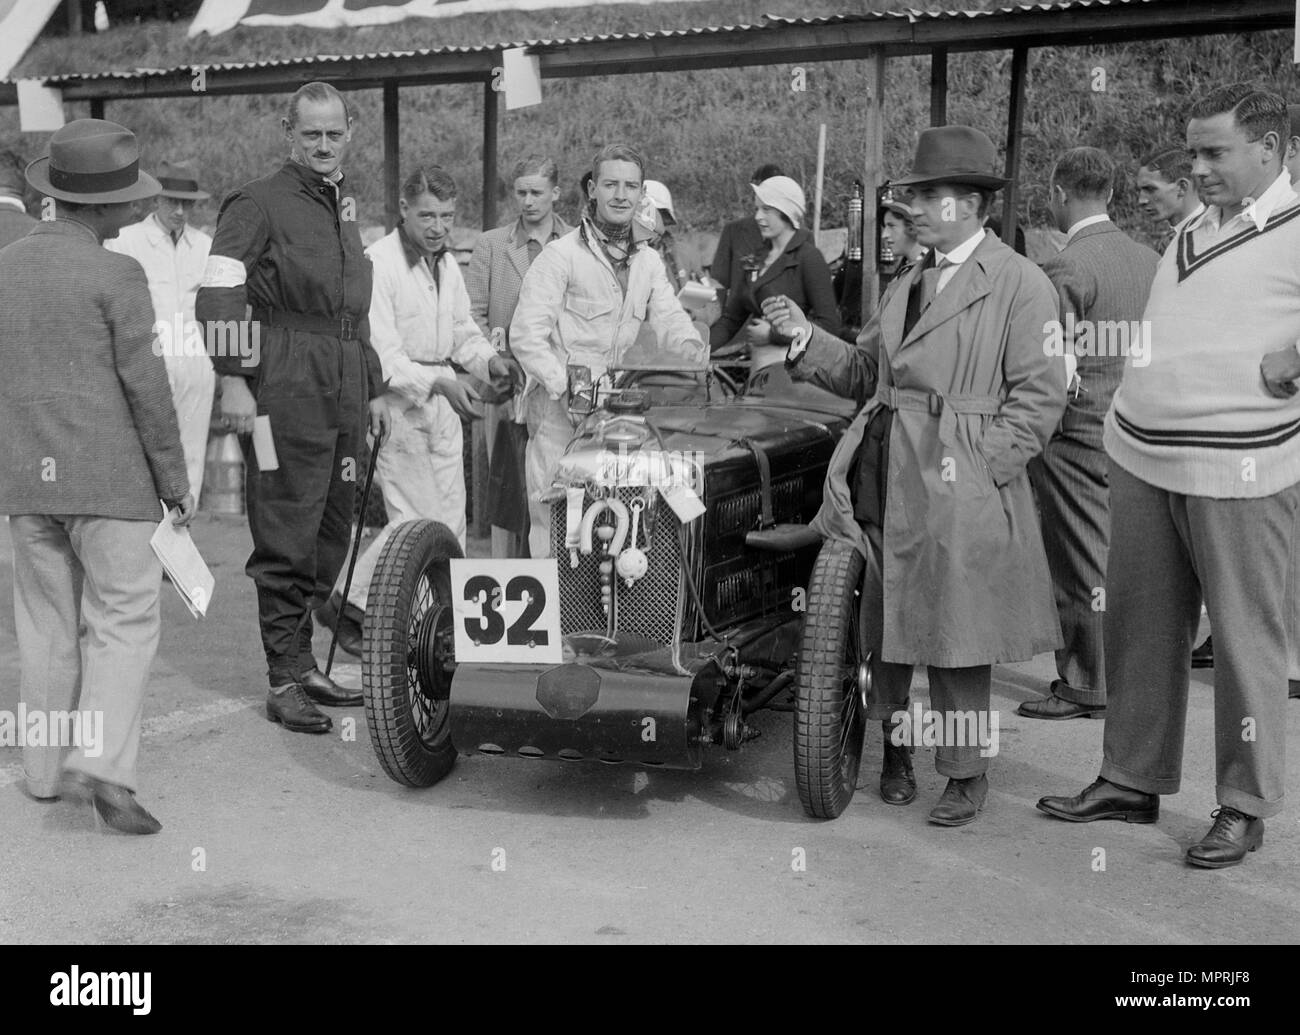 MG C type of Goldie Gardner at the RAC TT Race, Ards Circuit, Belfast, 1932. Artist: Bill Brunell. - Stock Image